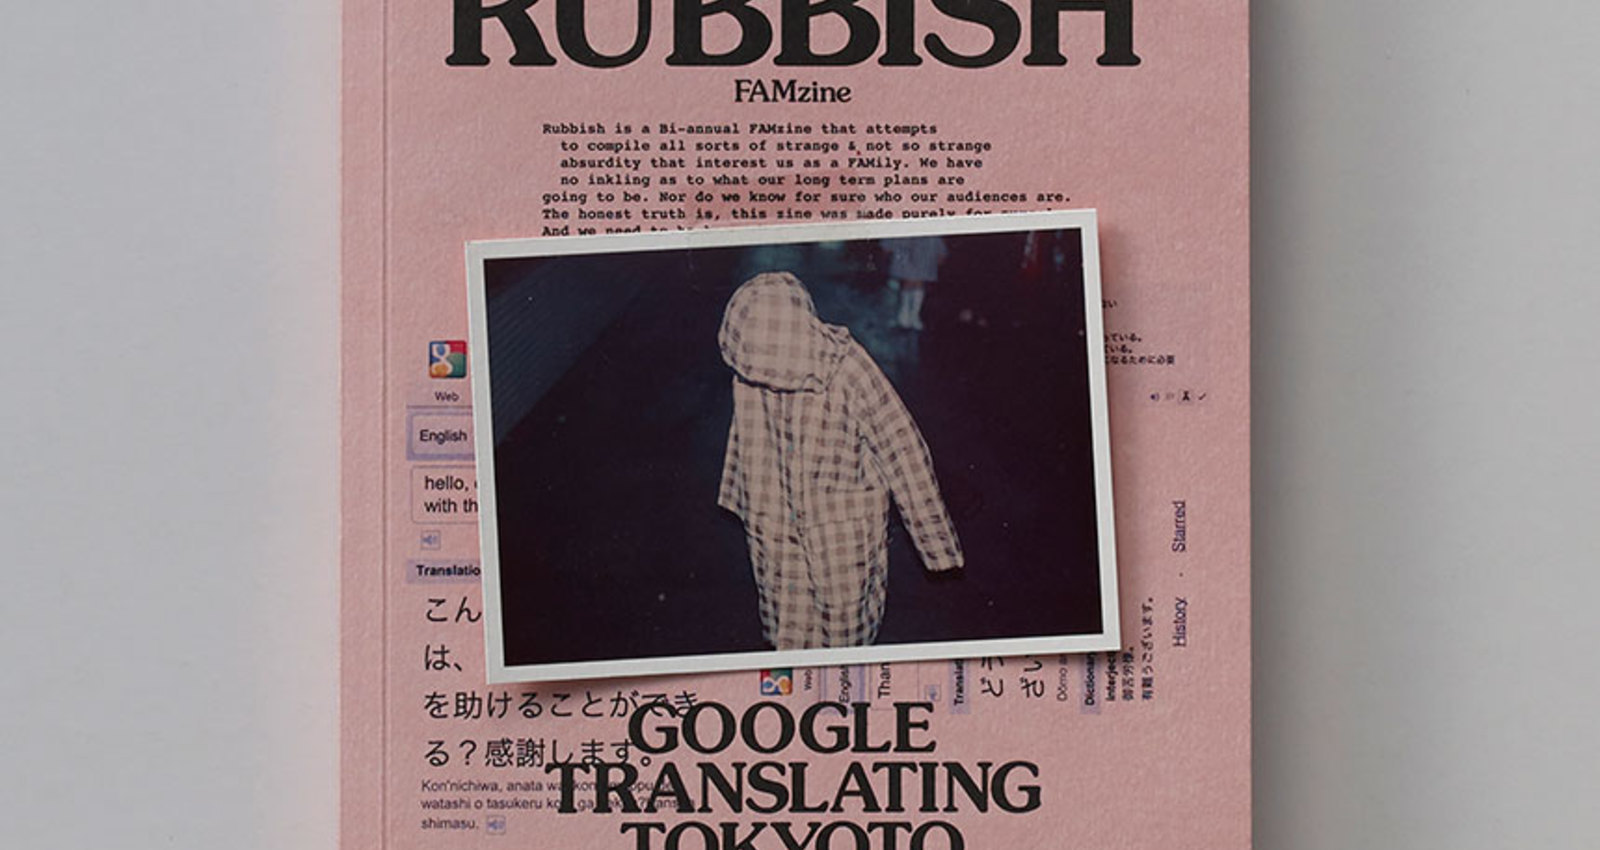 RUBBISH FAMZINE